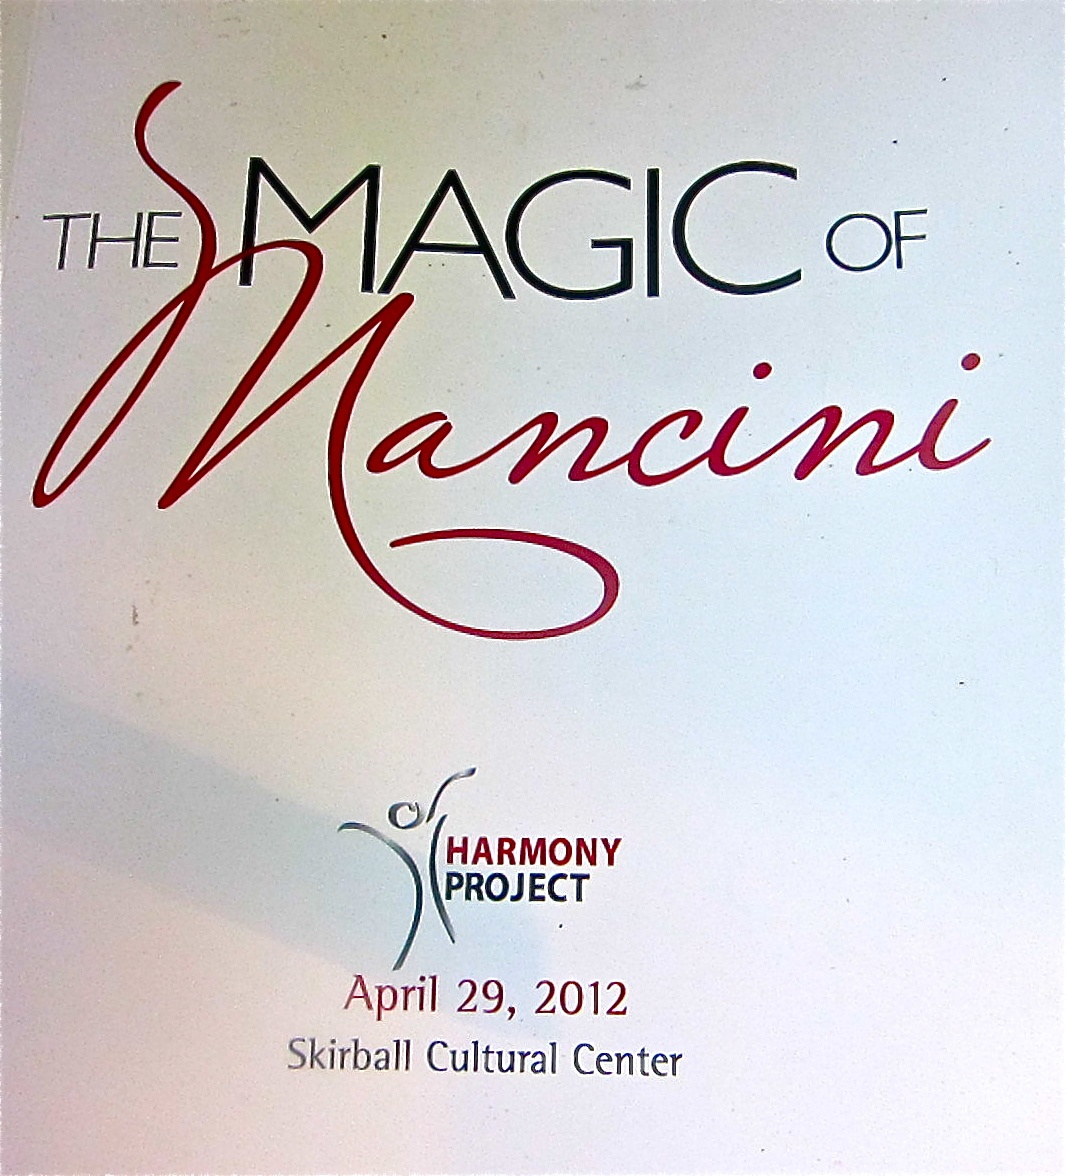 Cover of Harmony Project event book